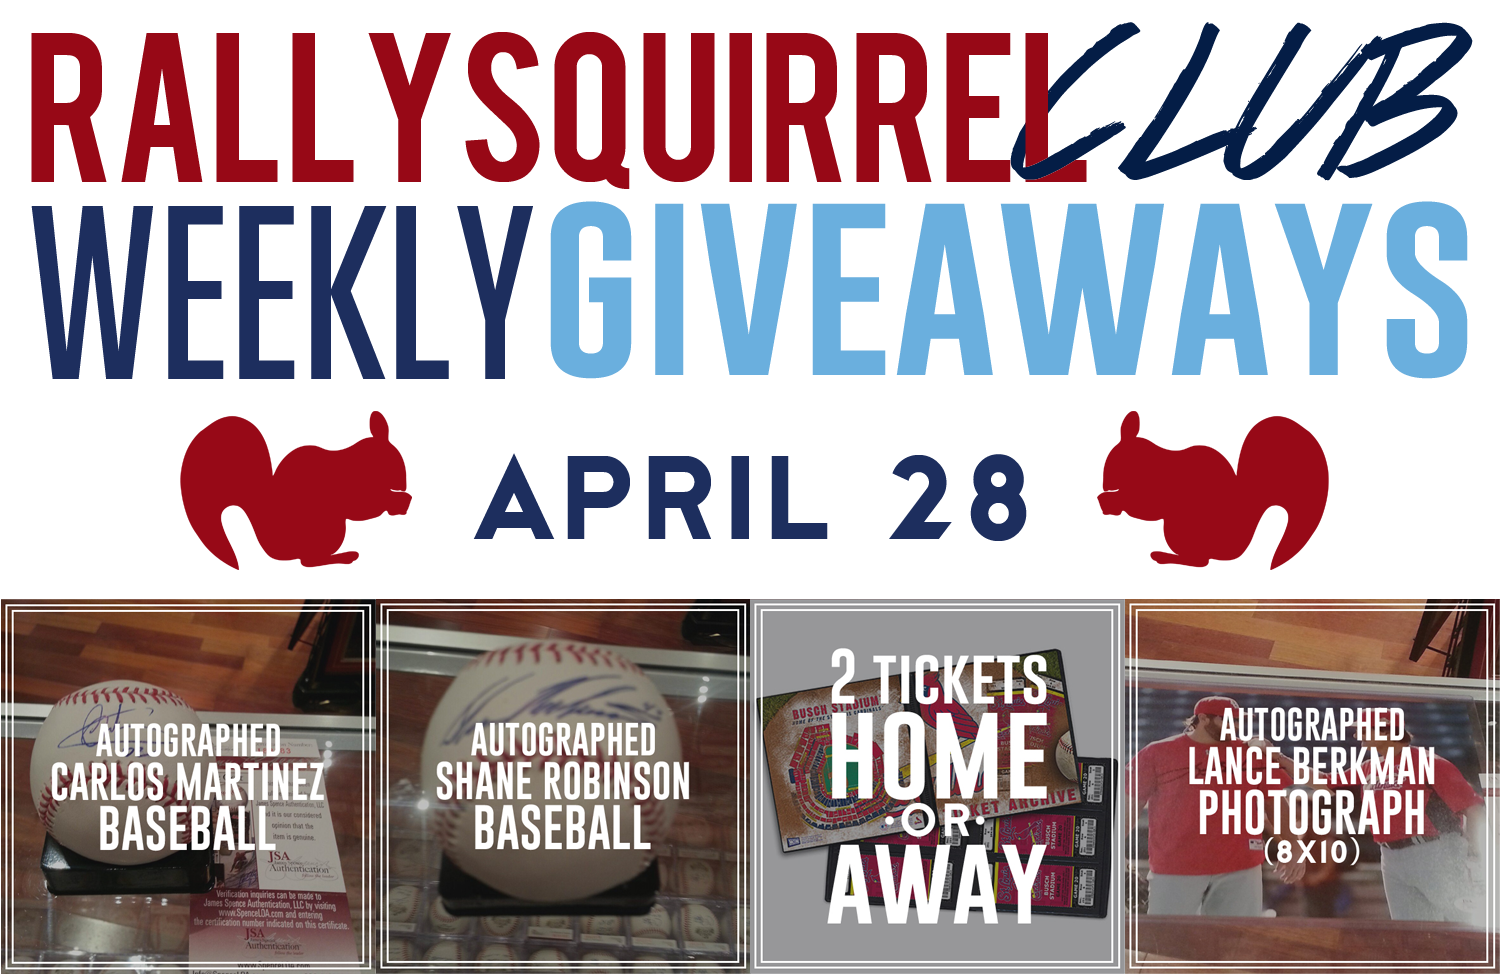 We're going Crazy in week 4 and getting seriously awesome in giveaways.